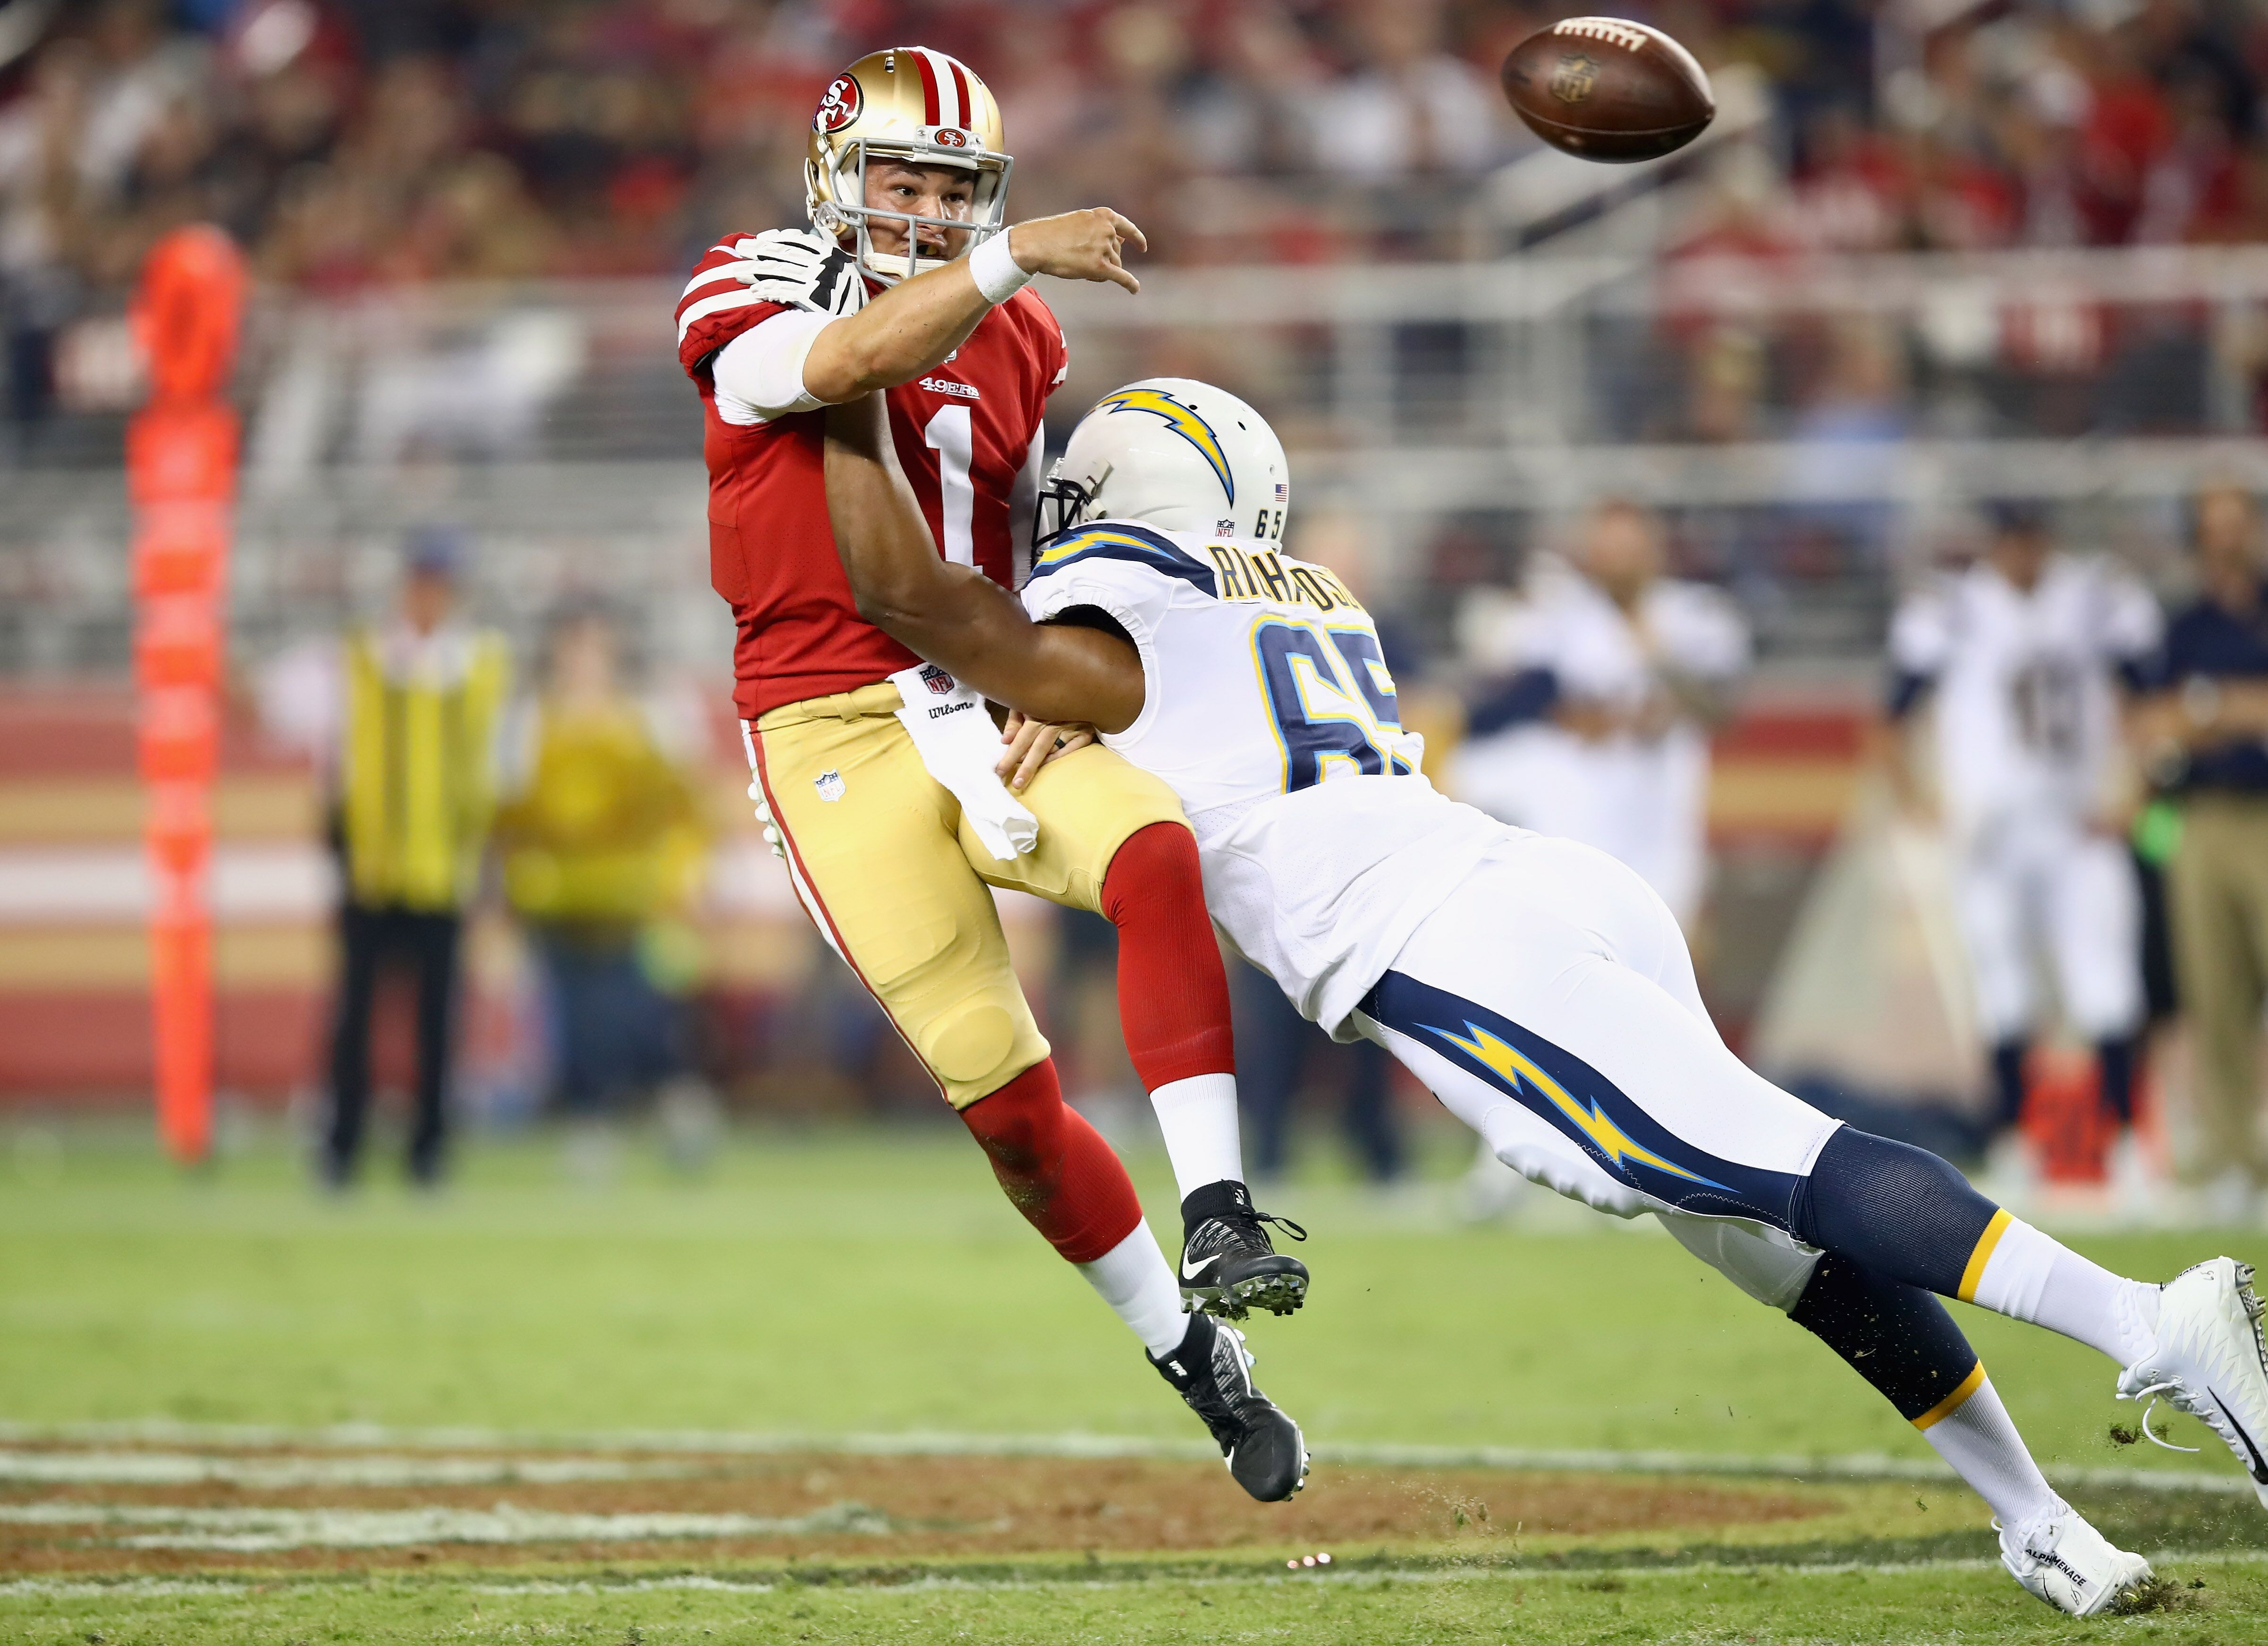 841395188-los-angeles-chargers-v-san-francisco-49ers.jpg